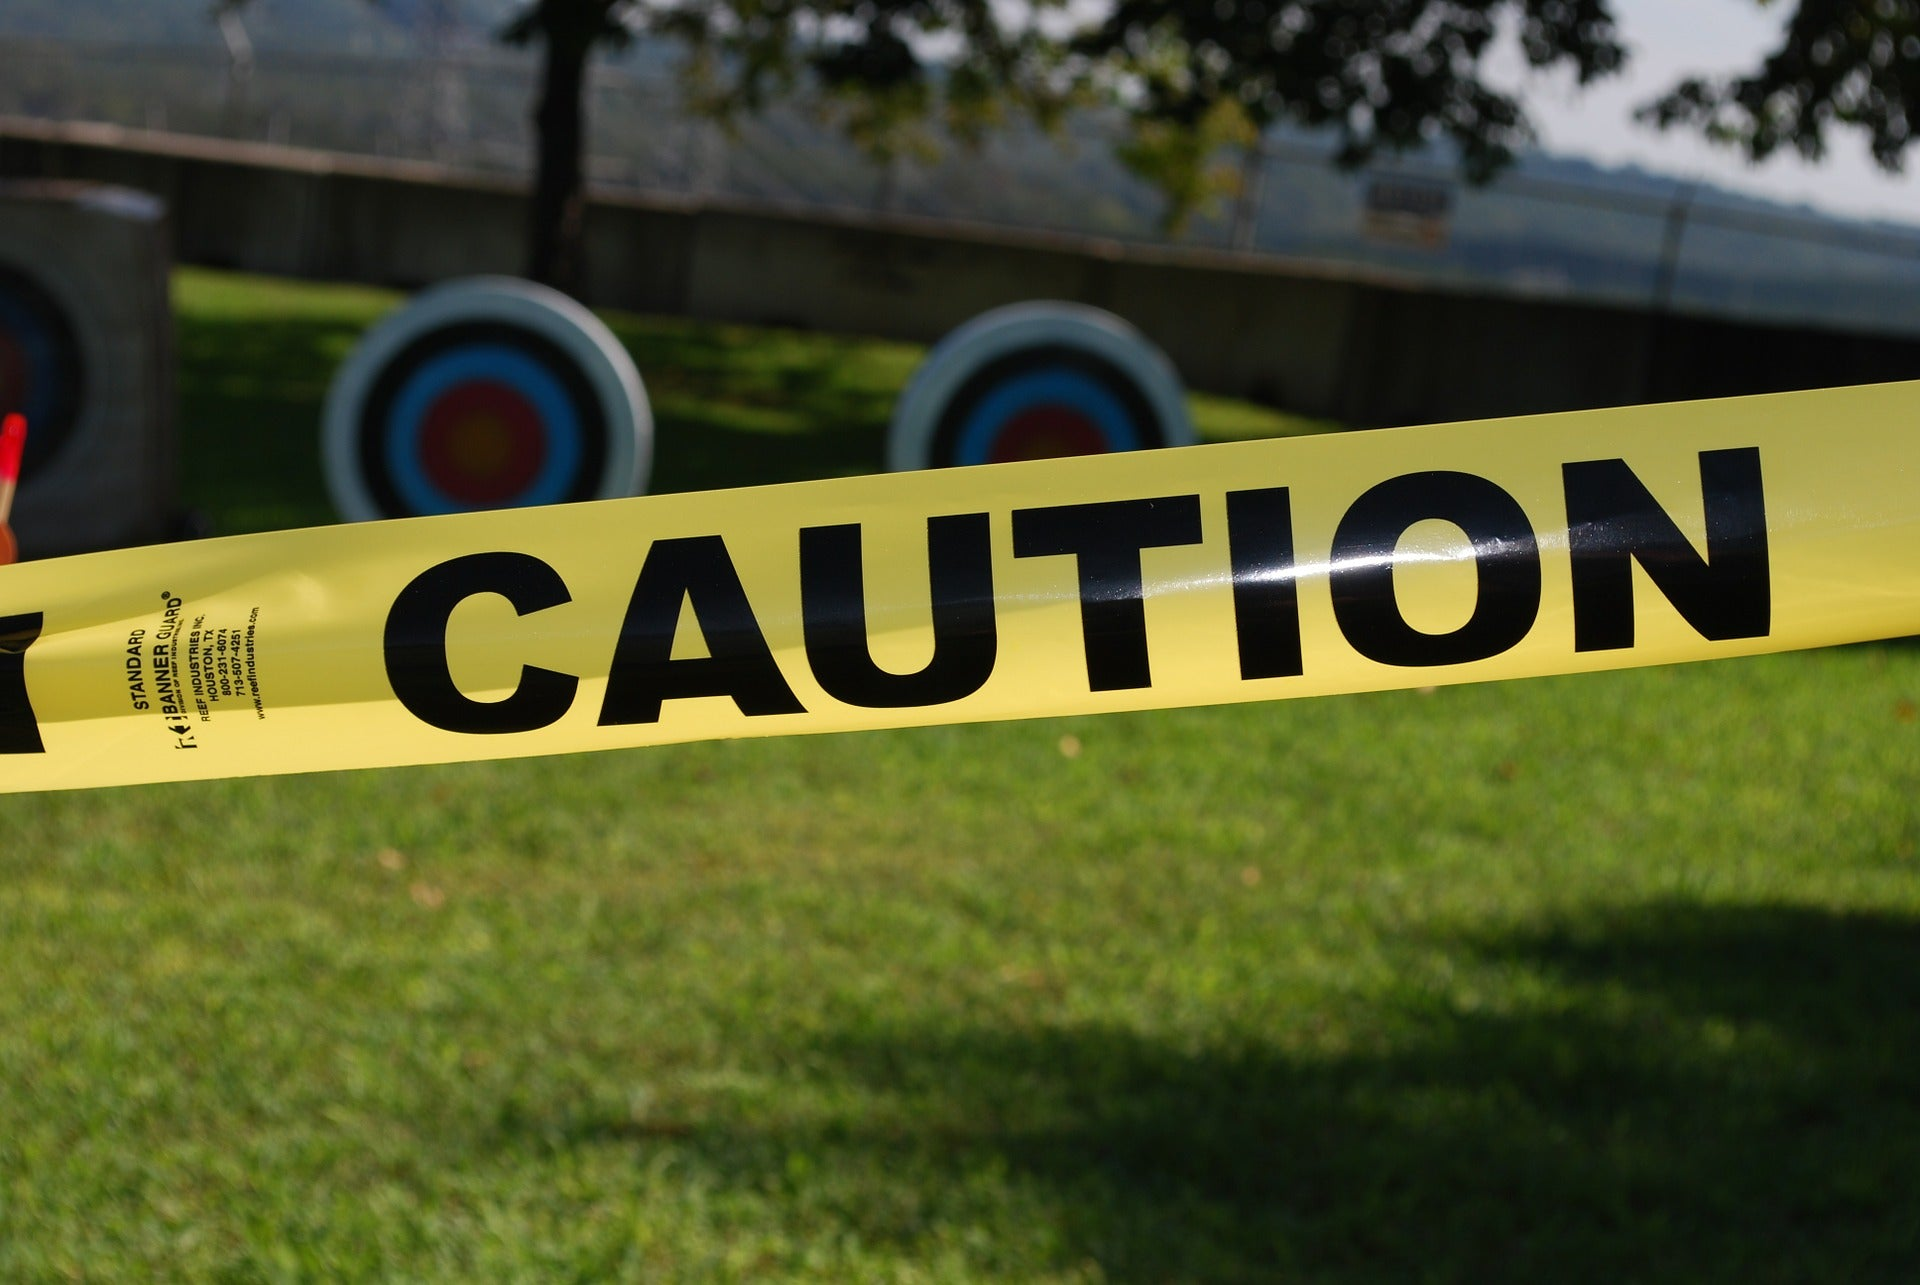 Caution tape, representing the caution issued against a pharmacist for an error by an employee